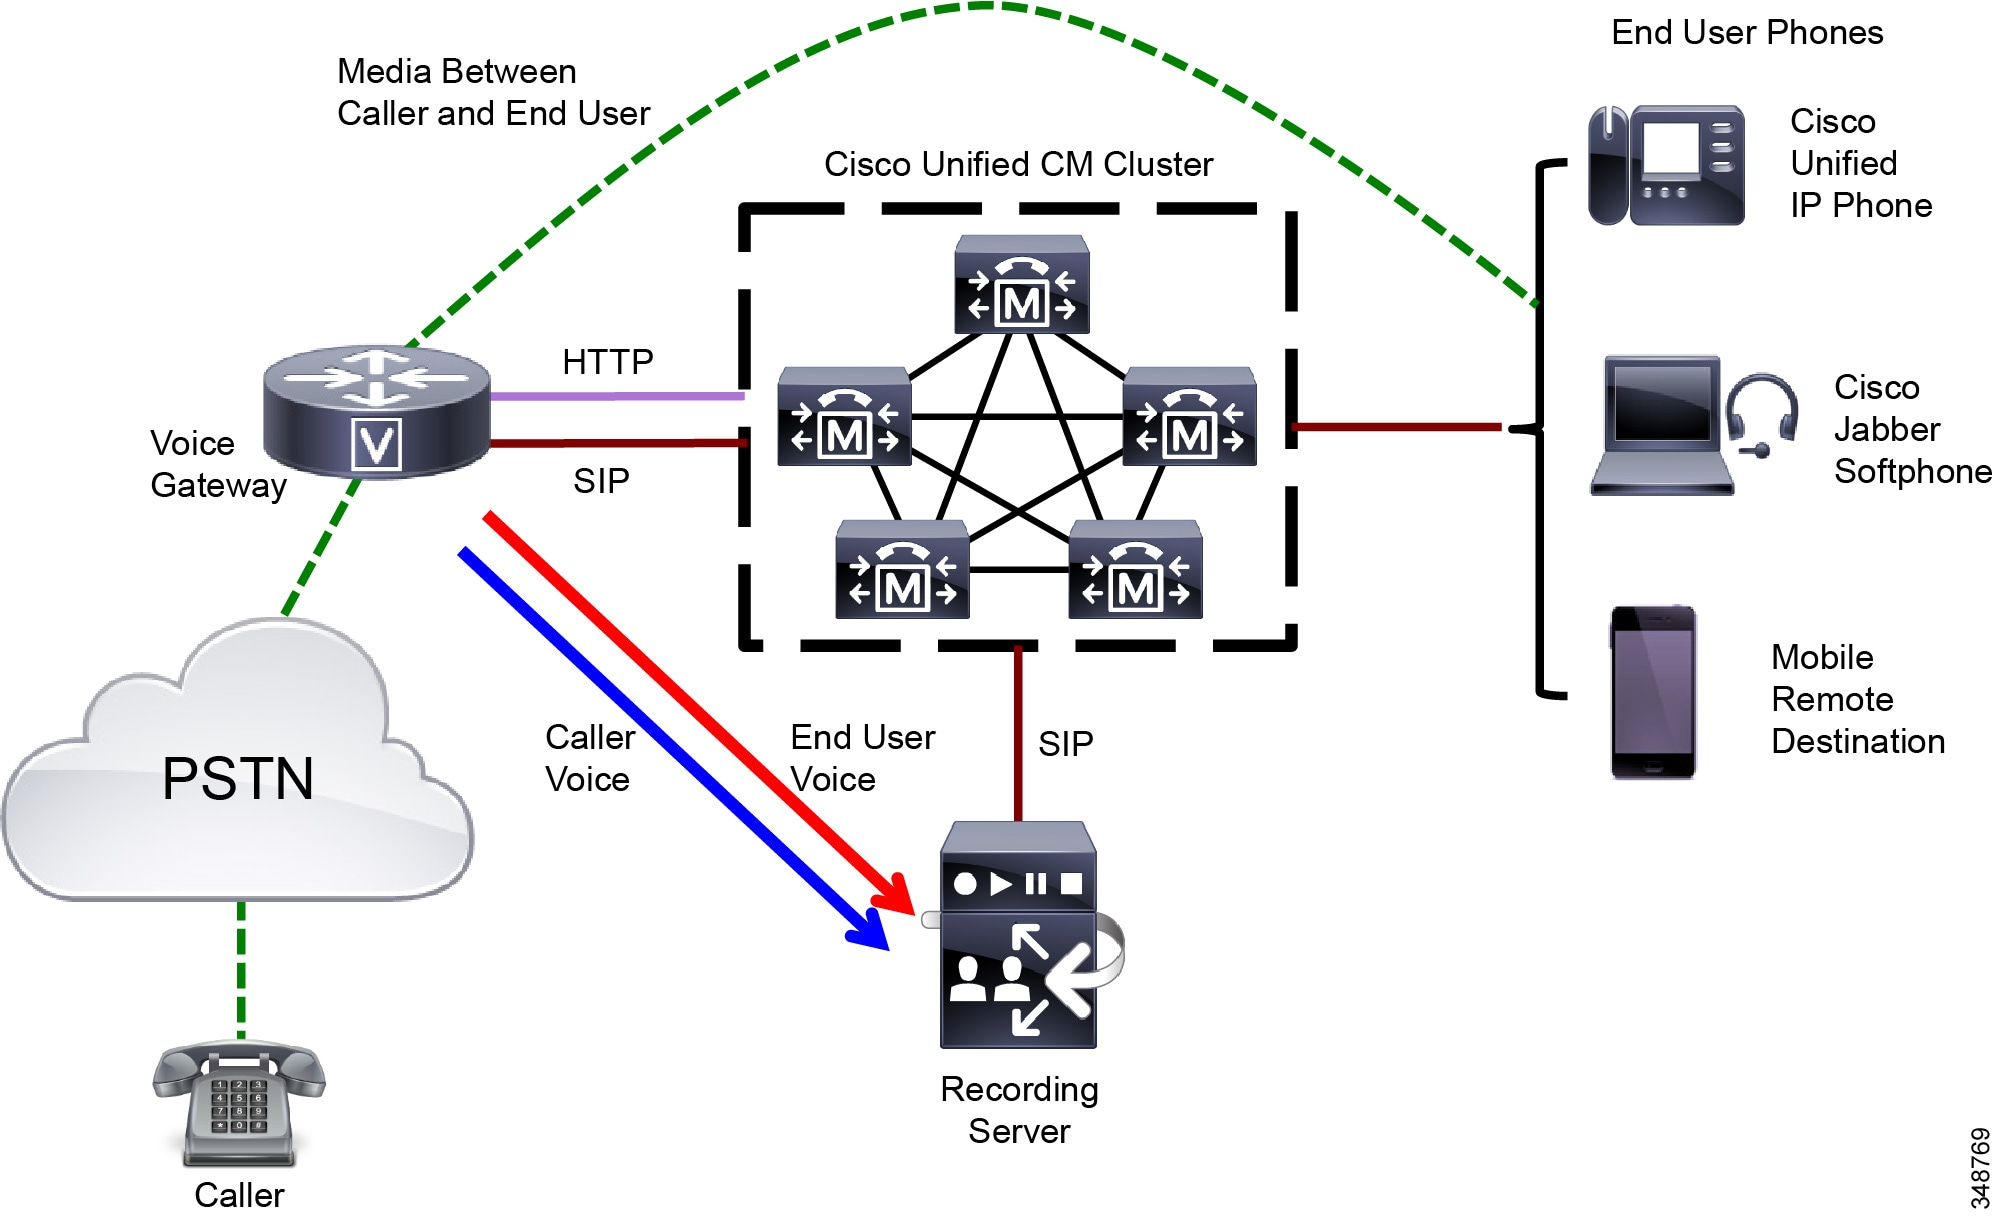 Cisco Collaboration System 10x Solution Reference Network Designs Telephone Audio Visual Indicator Circuit Schematic Diagram With Unified Cm Based Recording The End User Phone And Media Forking Device Voice Gateway Are Decoupled They Can Register To Same